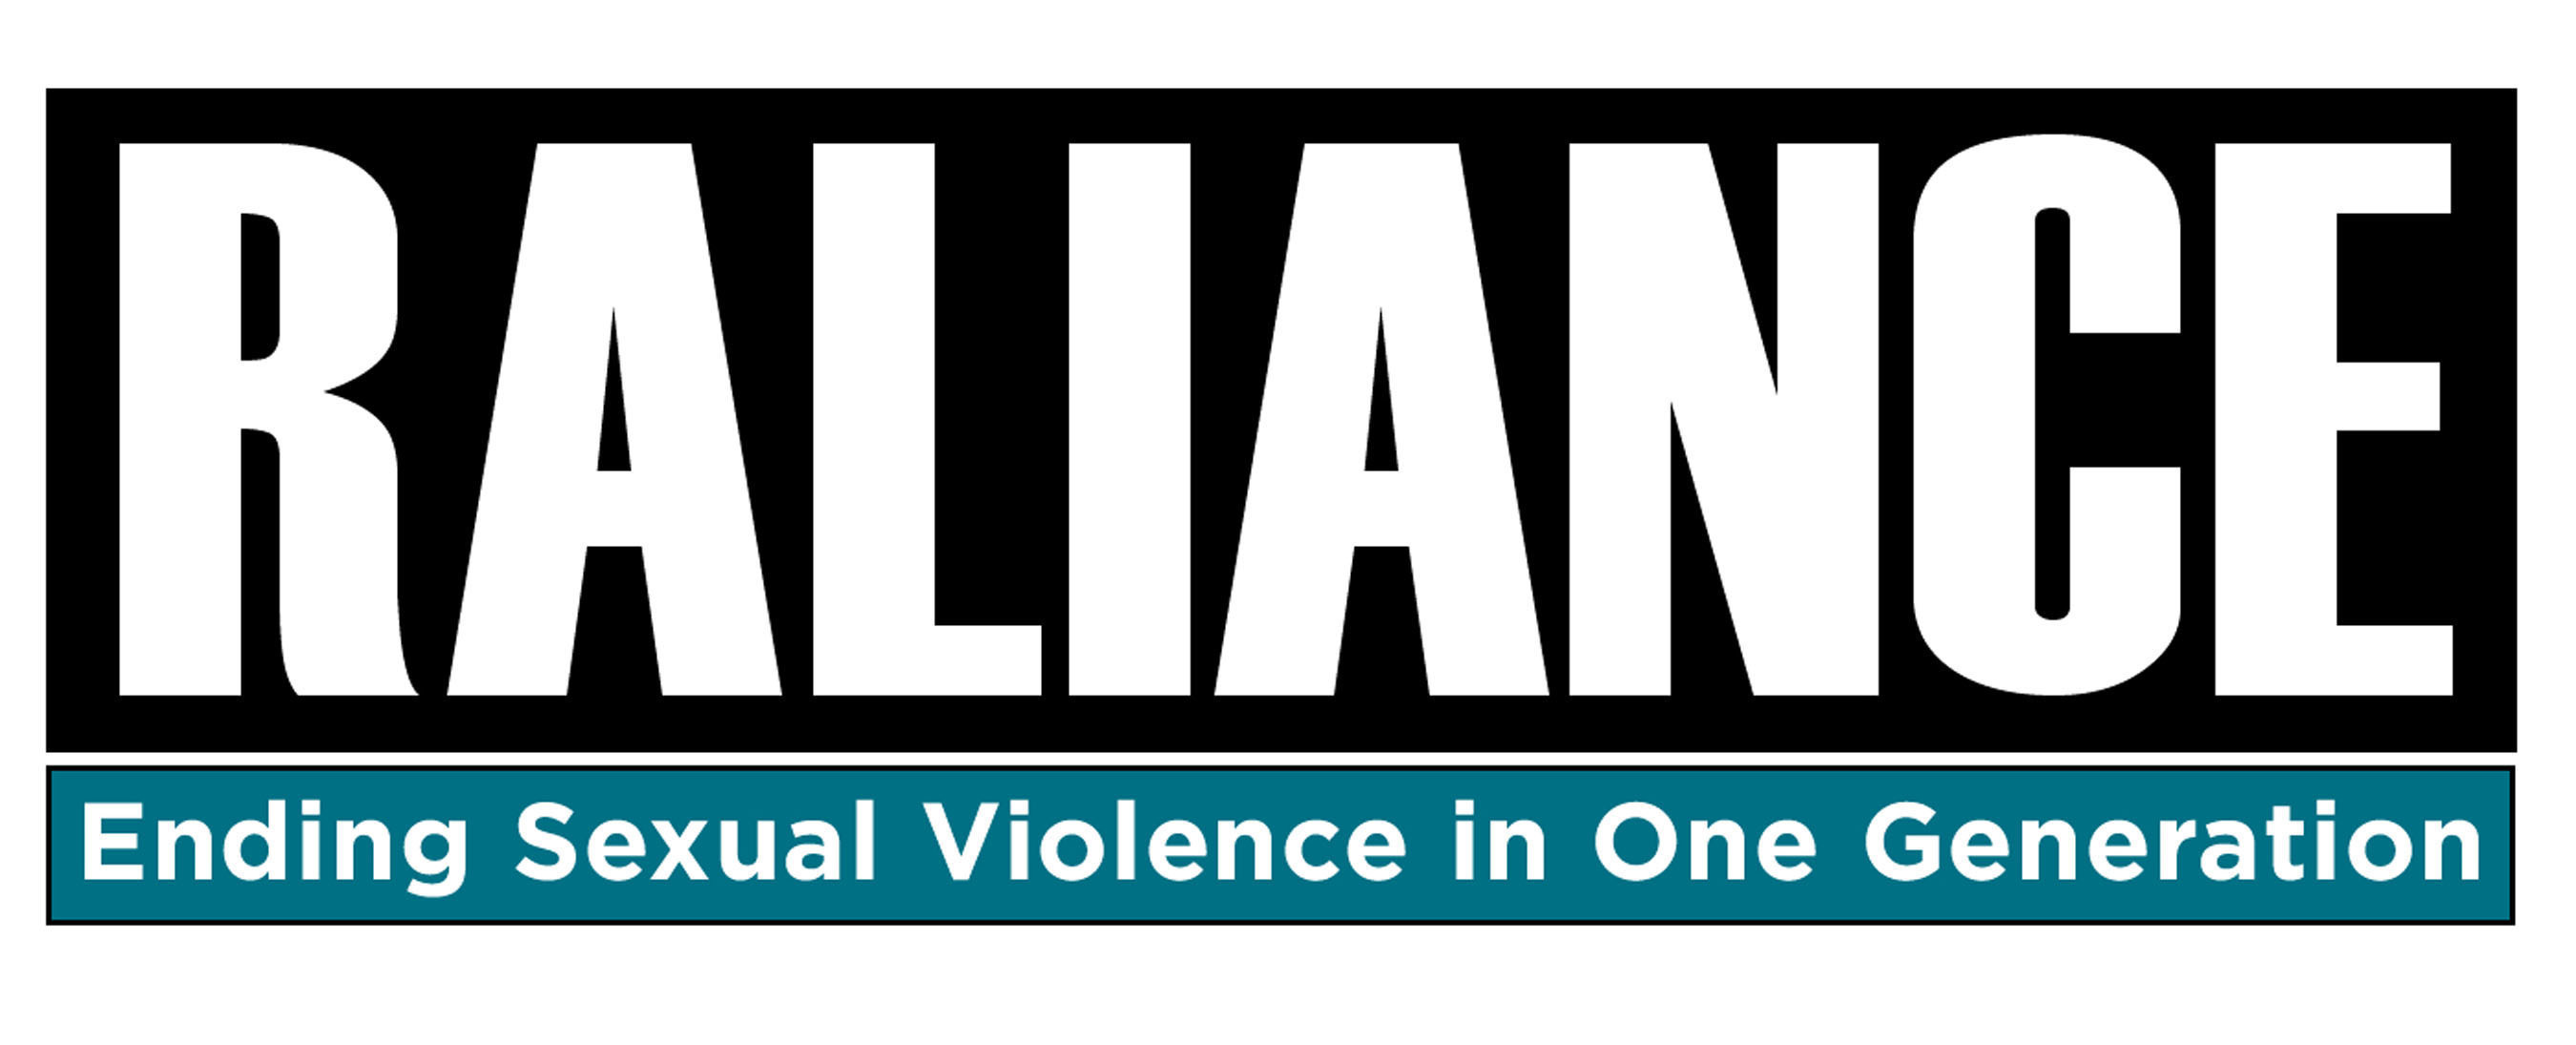 the violence prevention alliance The healing justice alliance conference is the annual conference of the national network of hospital-based violence intervention programs (nnhvip), cure violence replication sites, and other health-based approaches to ending urban violence and supporting survivors.